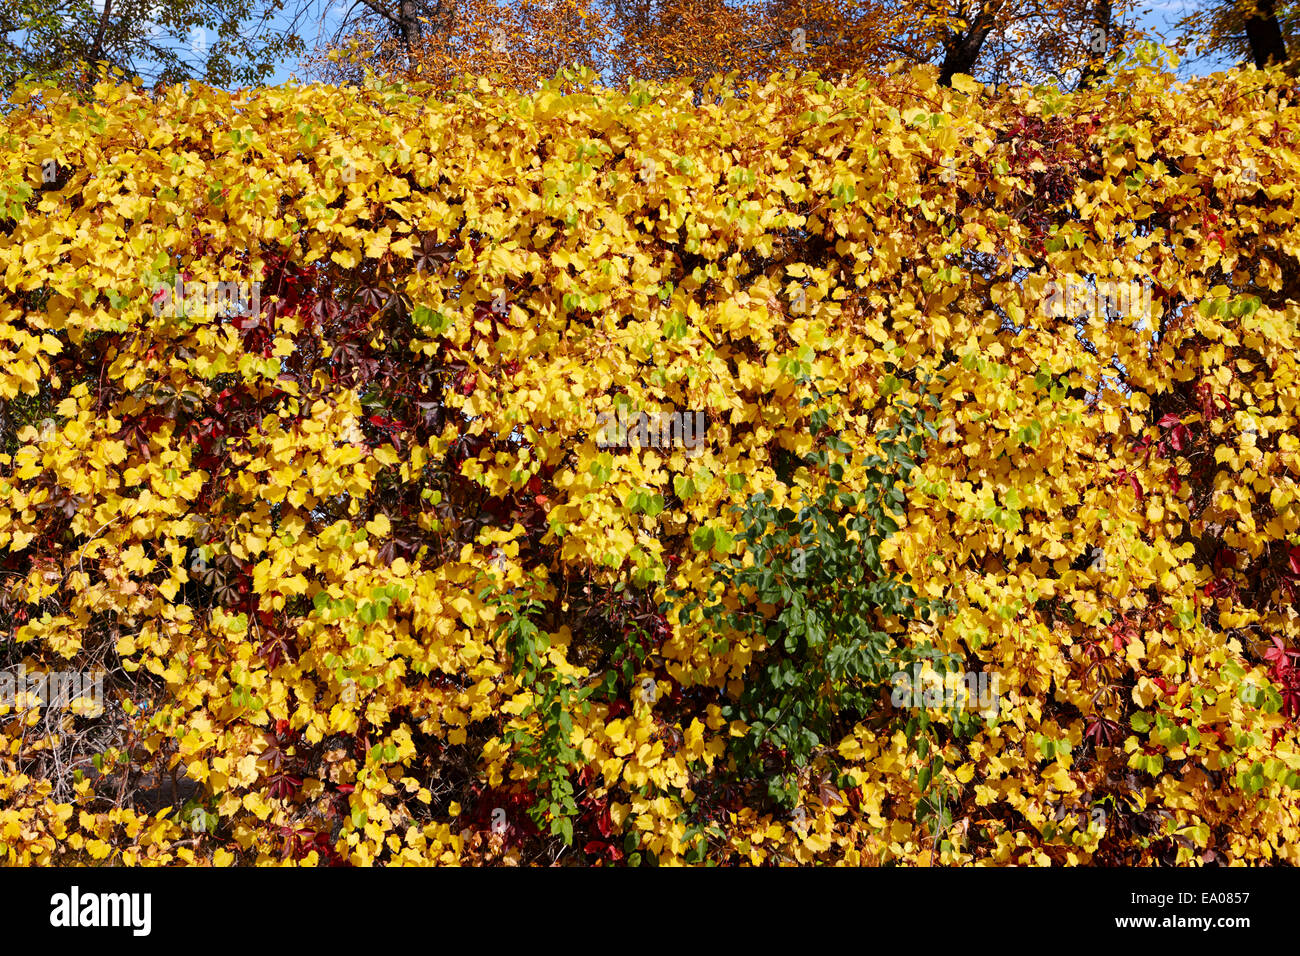 autumn fence foliage turning yellow Saskatchewan Canada - Stock Image